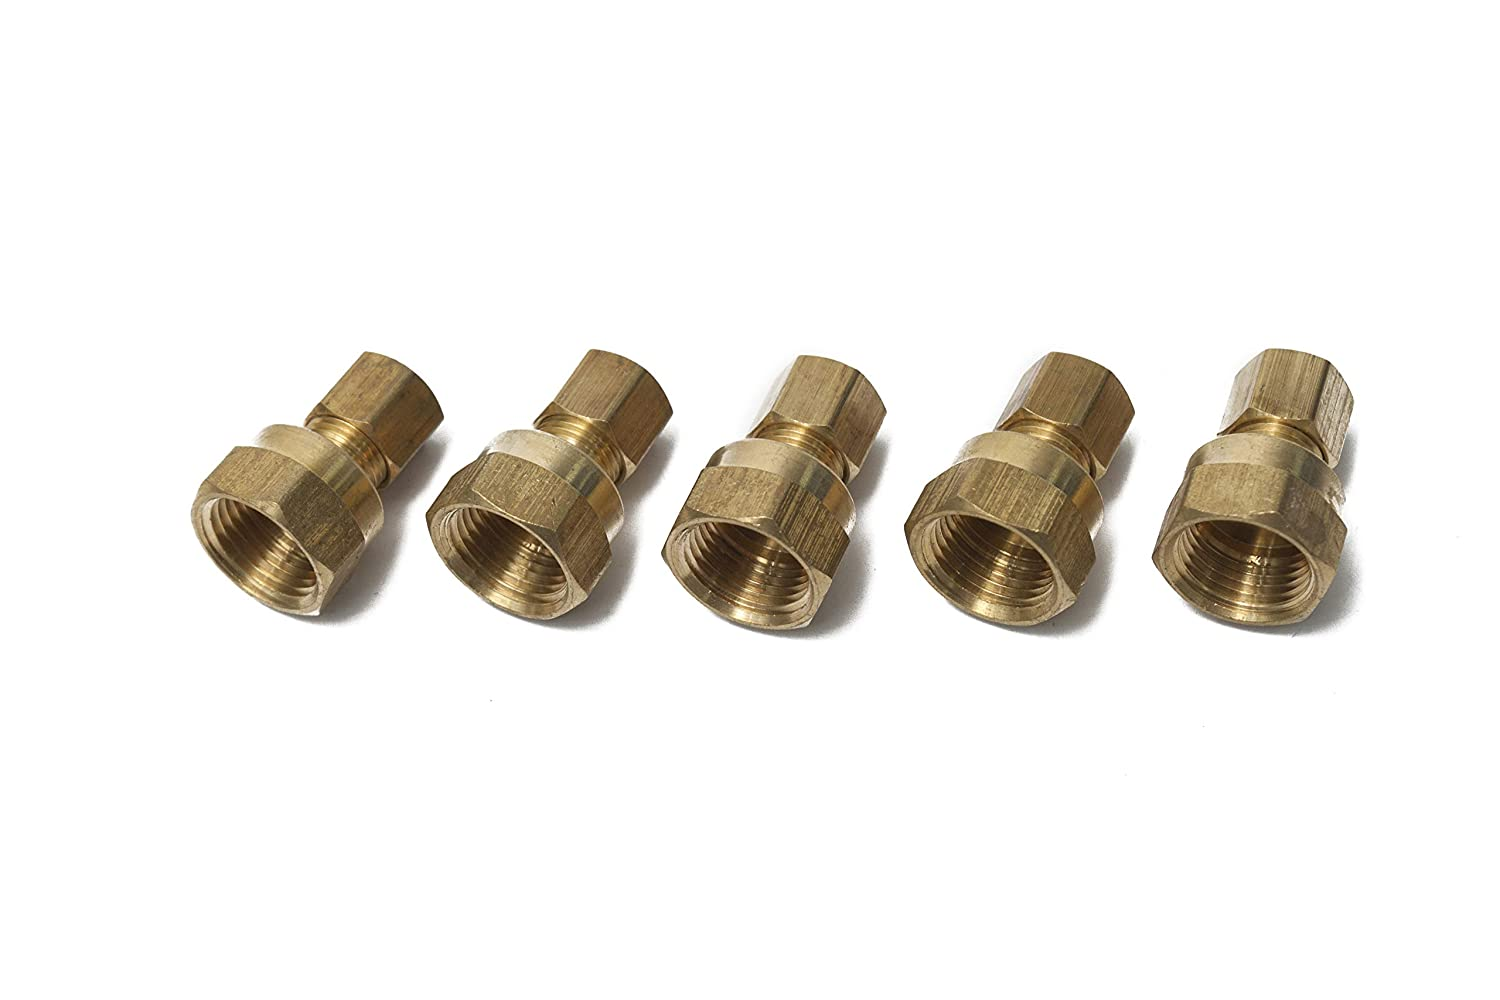 Generic Brass 1/4' OD x 1/4' Female NPT Compression Connector Fitting(Pack of 5 ) HuaxinYicheng Trade Co. Ltd.